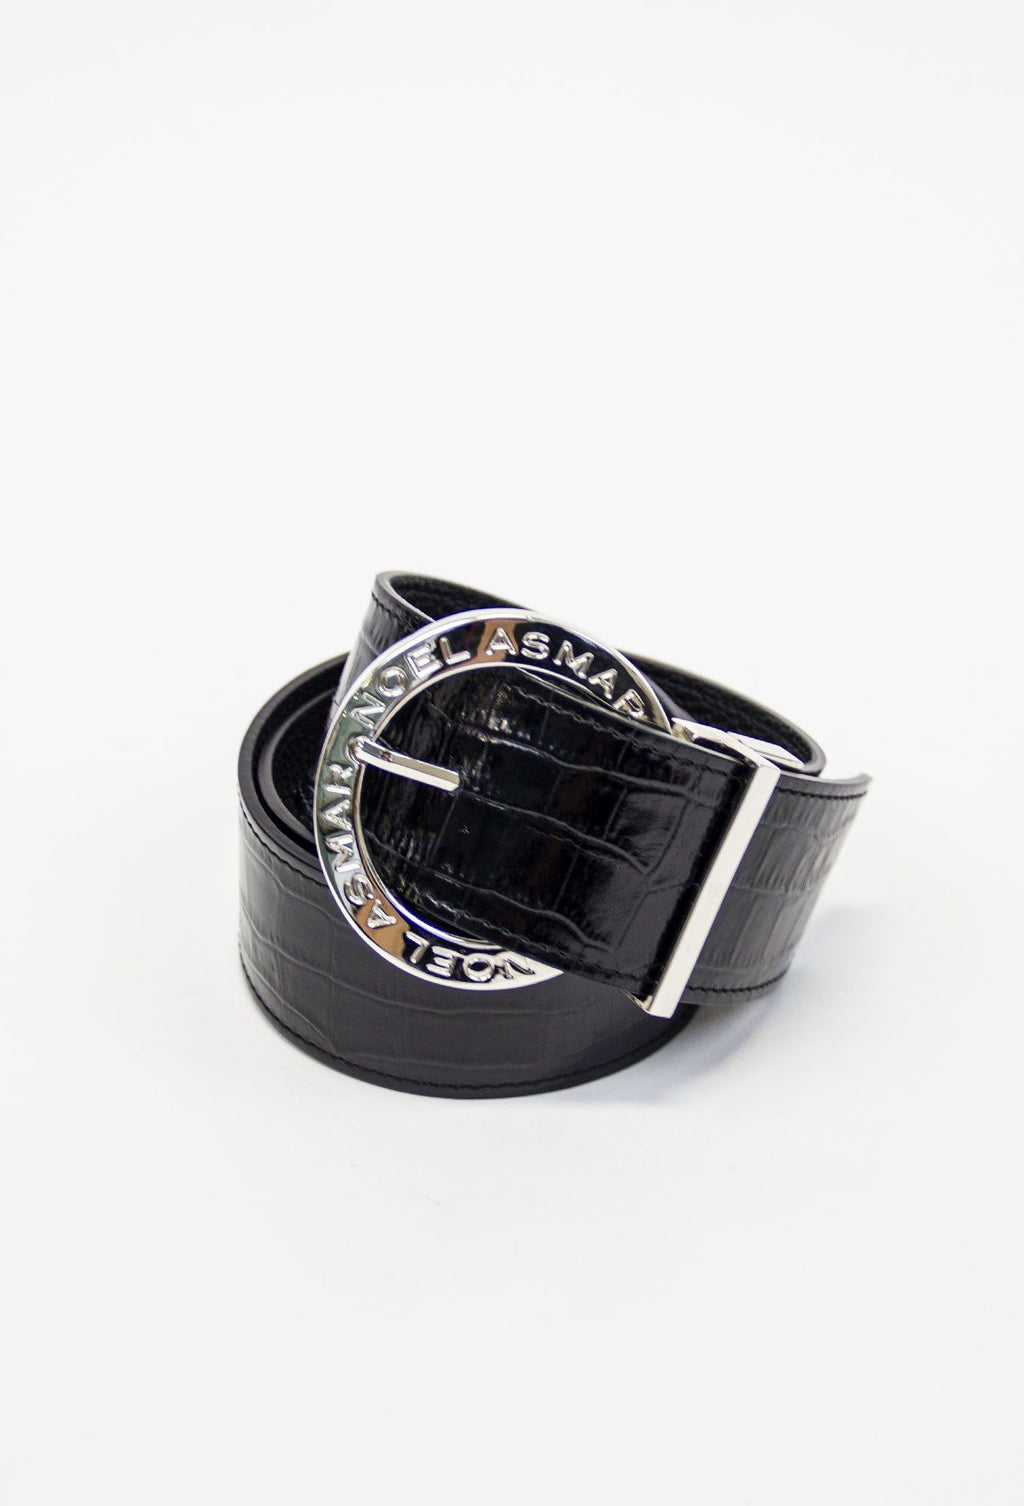 Asmar Leather Crocodile Belt (Chrome Accents)